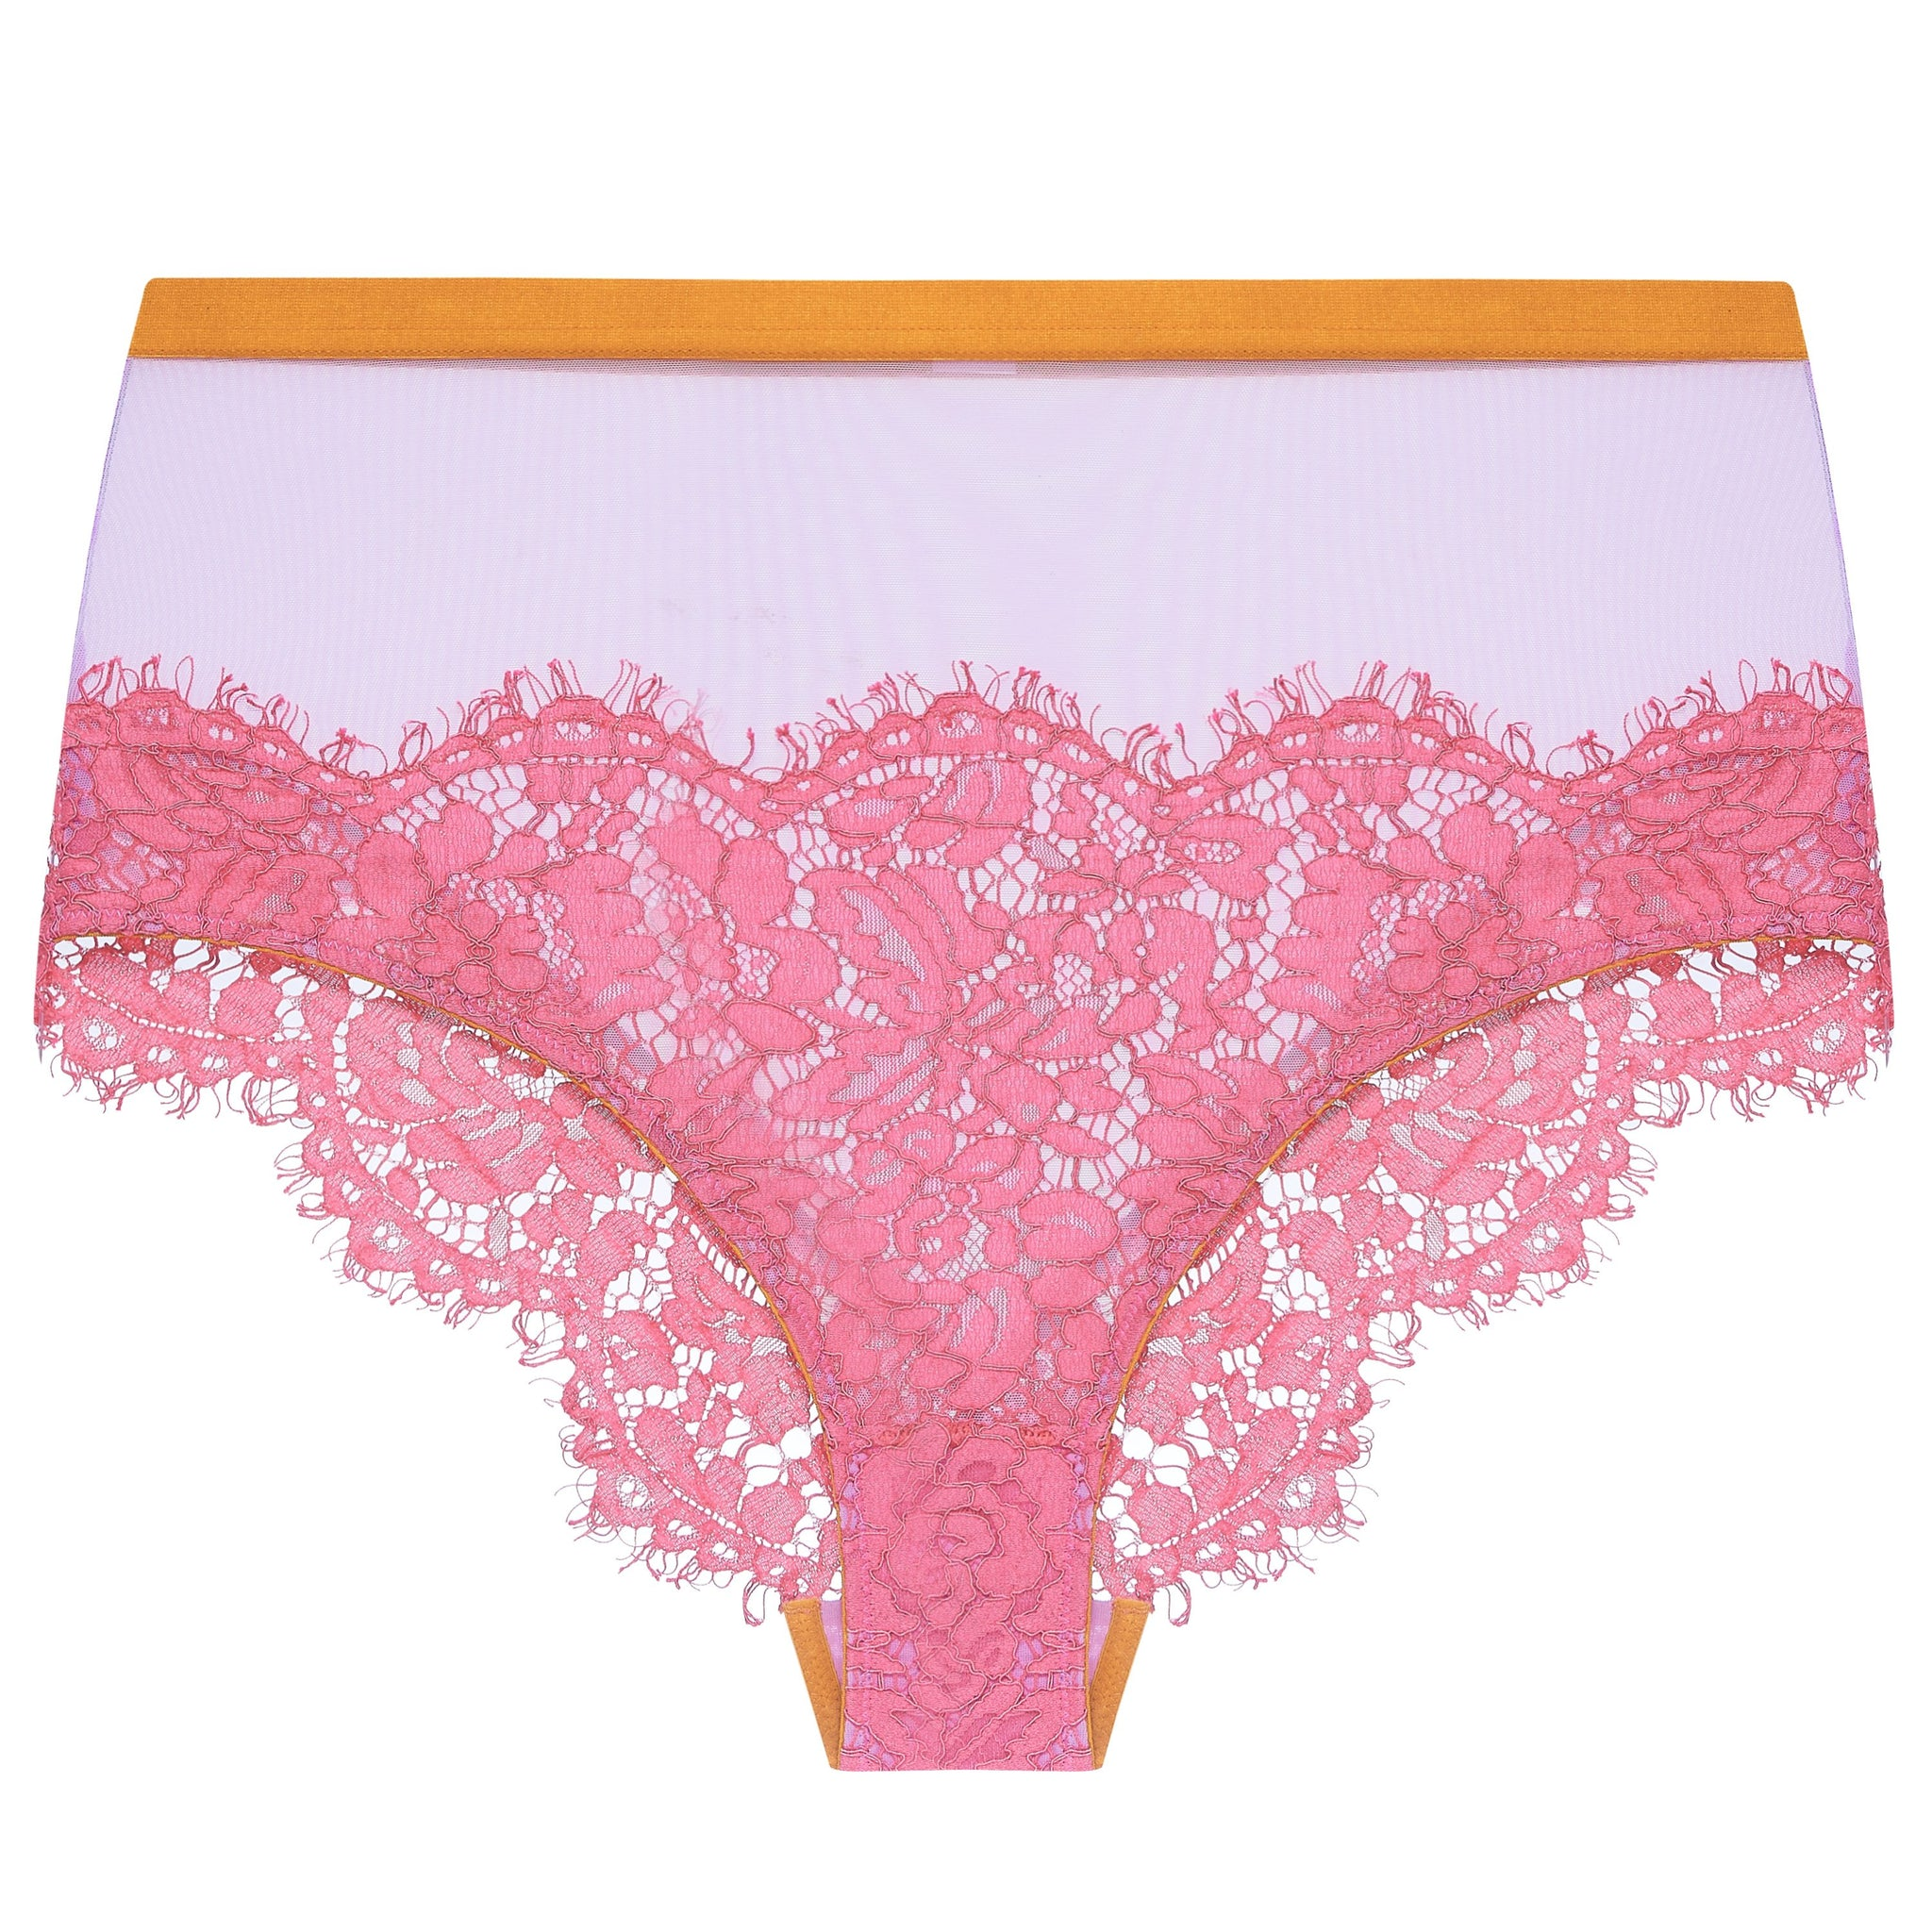 Dora Larsen AW19 | Colourful Lingerie‎ - Sadie high waist knicker underwear set